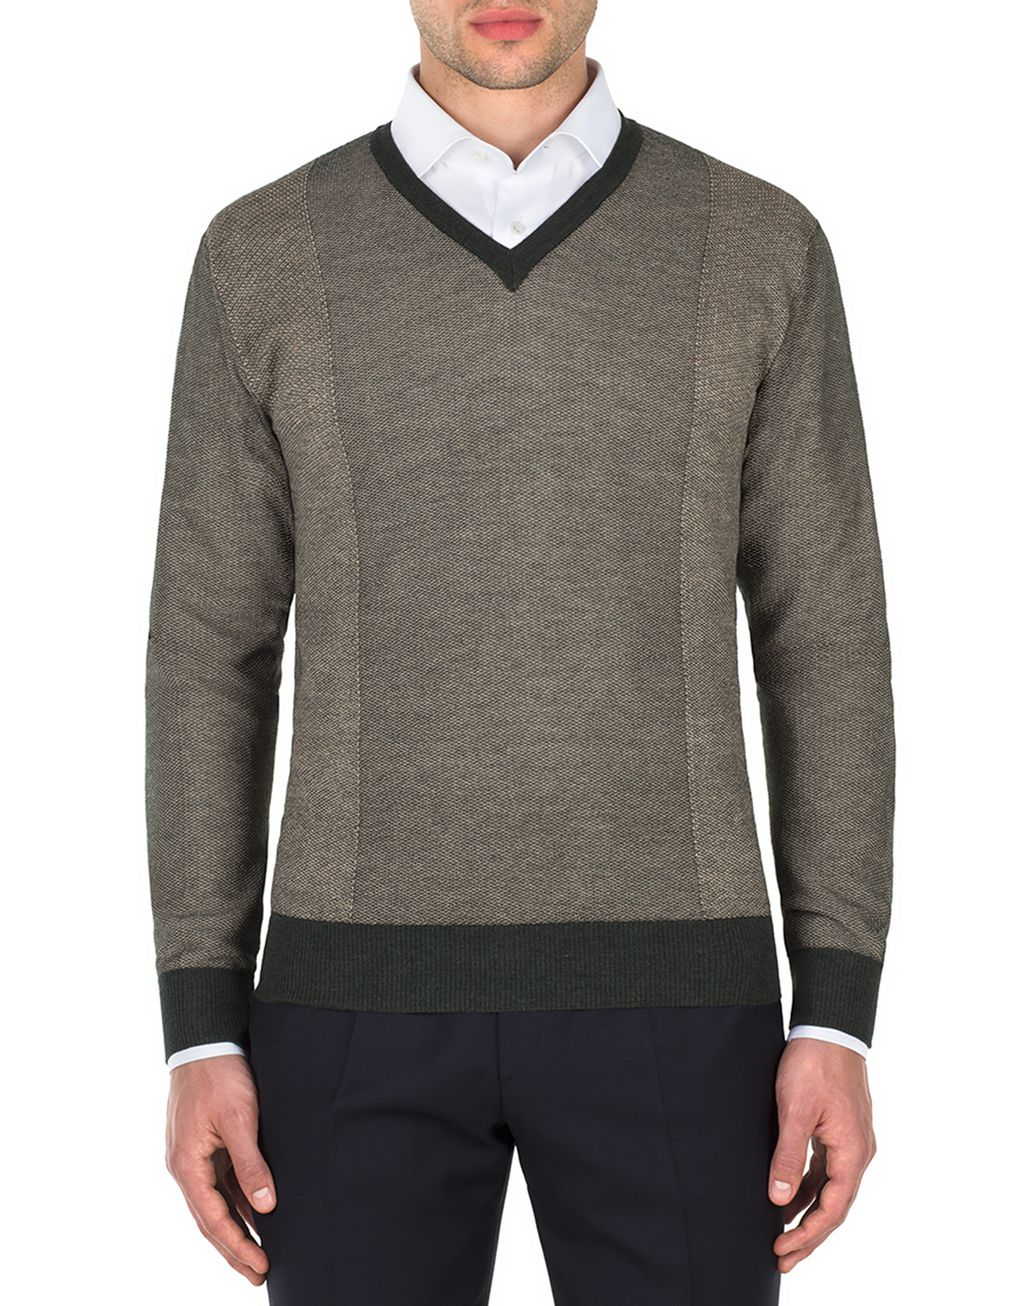 BRIONI Thyme Green and Sand V-neck Micro Jacquard Sweater   Knitwear Man r